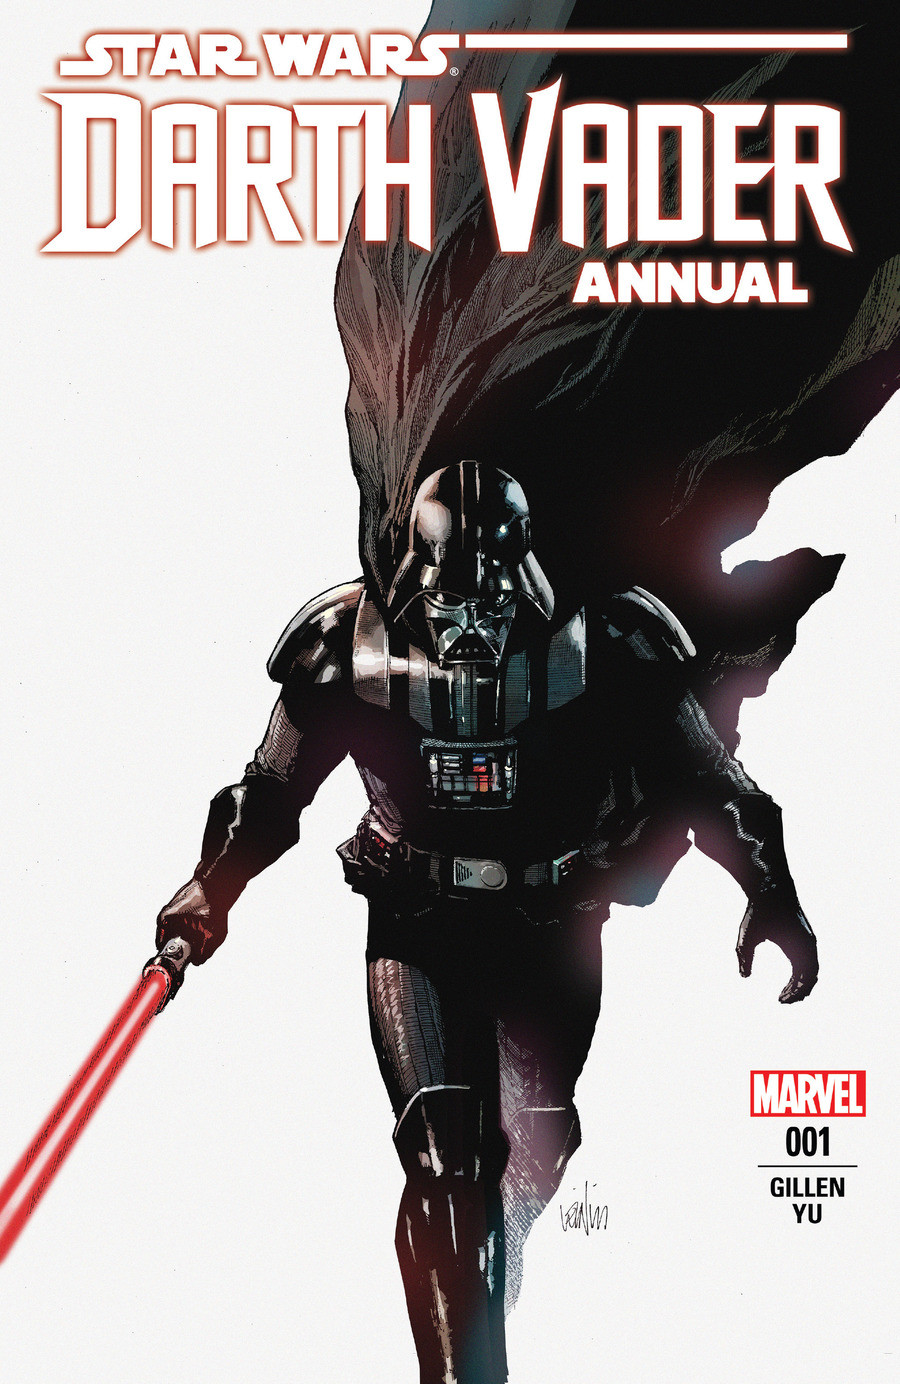 Star Wars Darth Vader side story. Darth Vader travels to one of the empires planets to ensure they stay loyal to the Emperor, and not siding with the rebels all